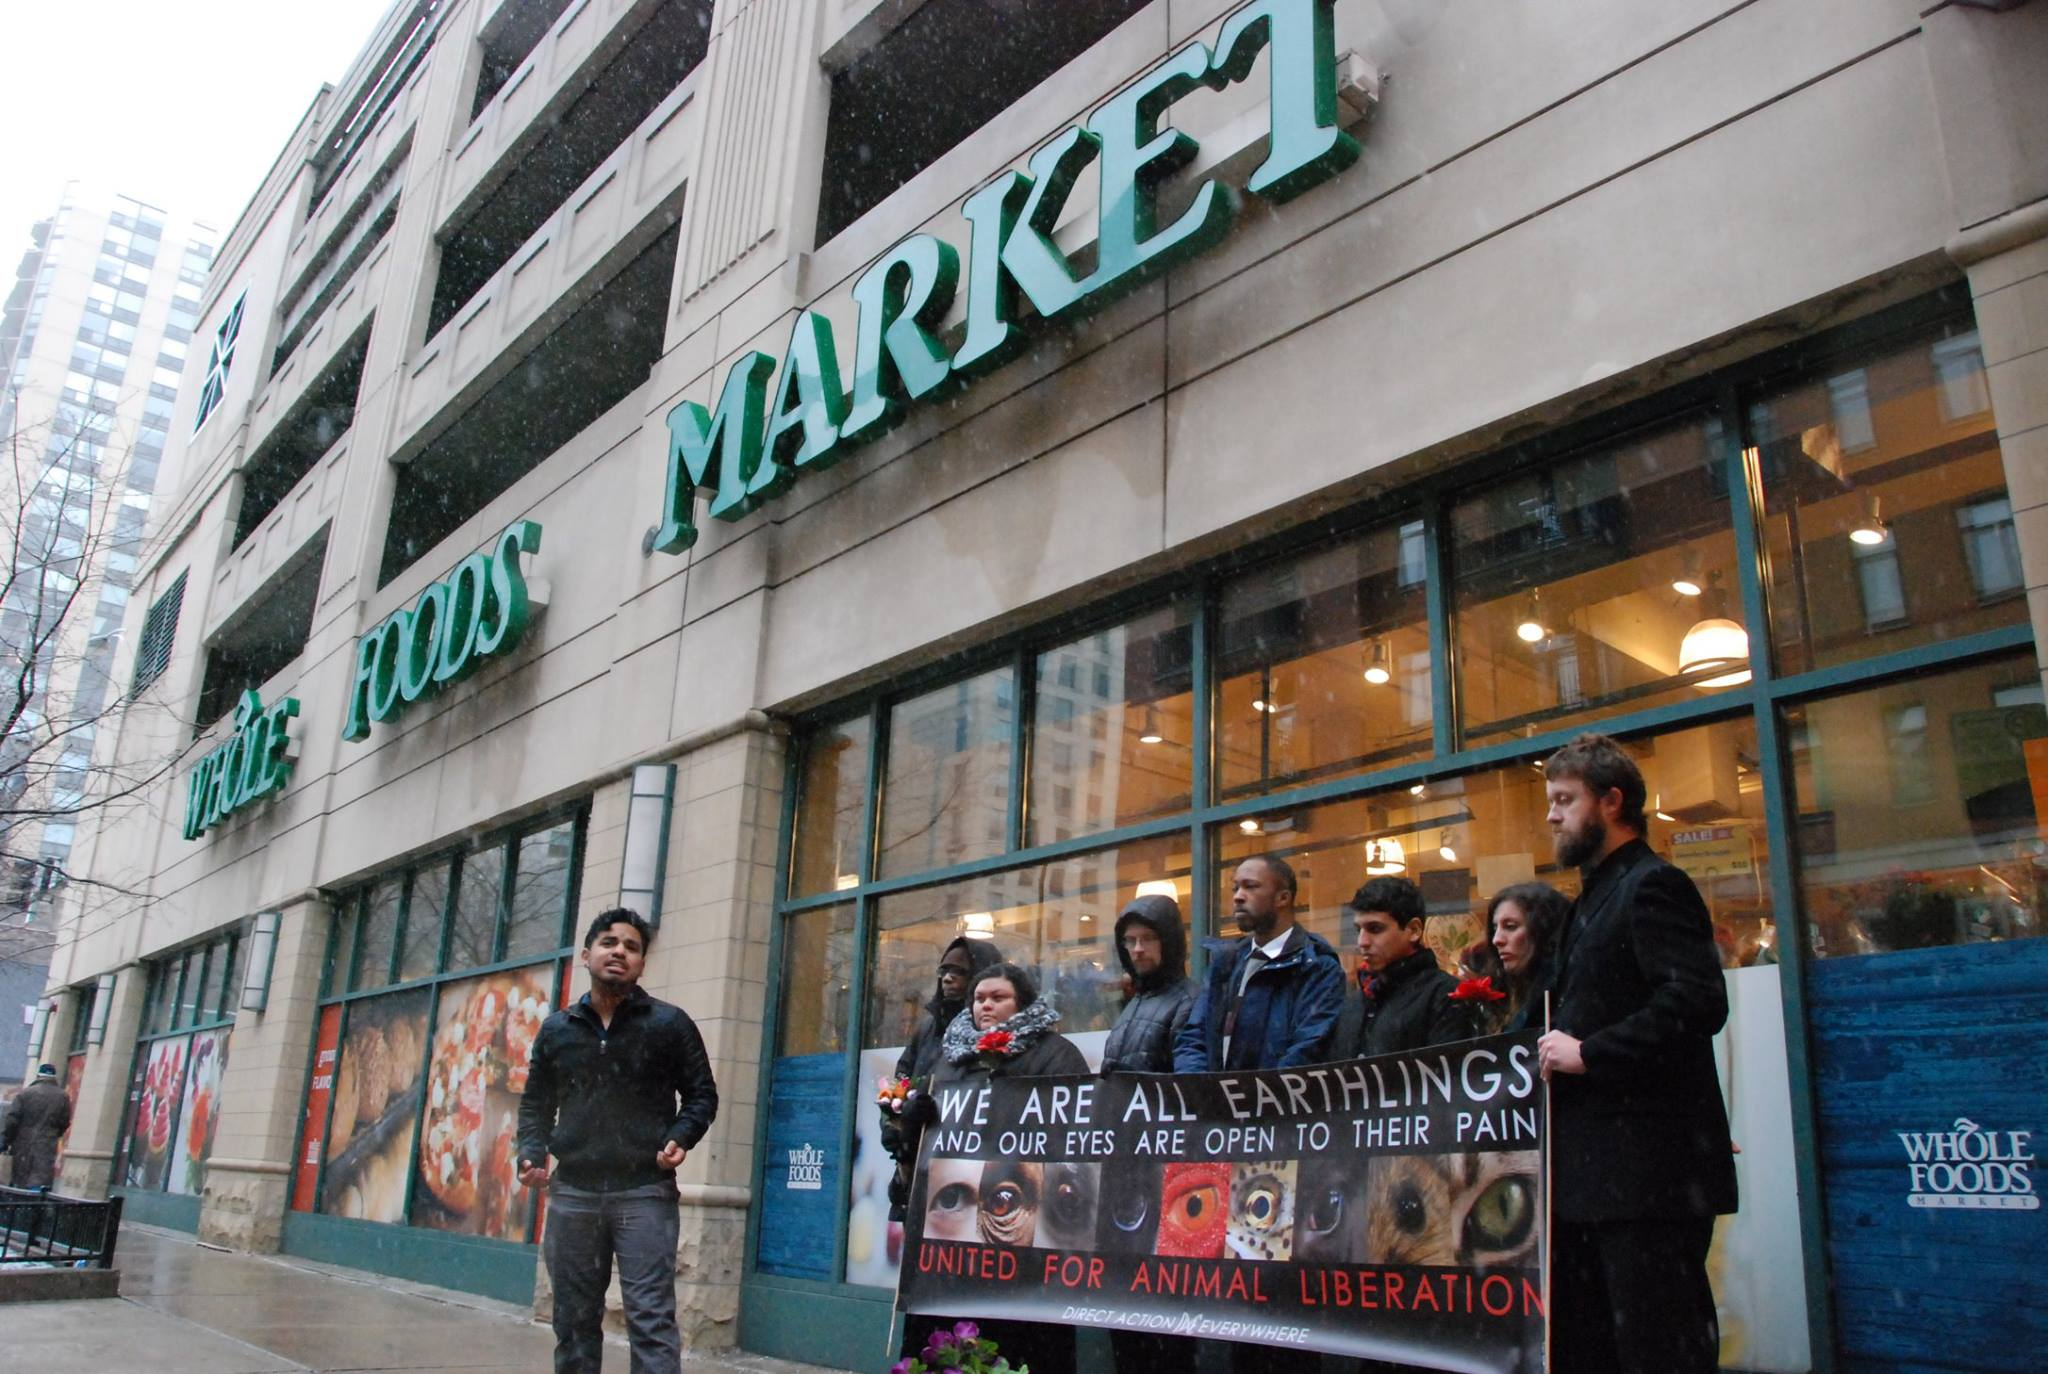 Activists lined up outside of Whole Foods holding an animal rights banner. Man in front of them is yelling the message to the public.